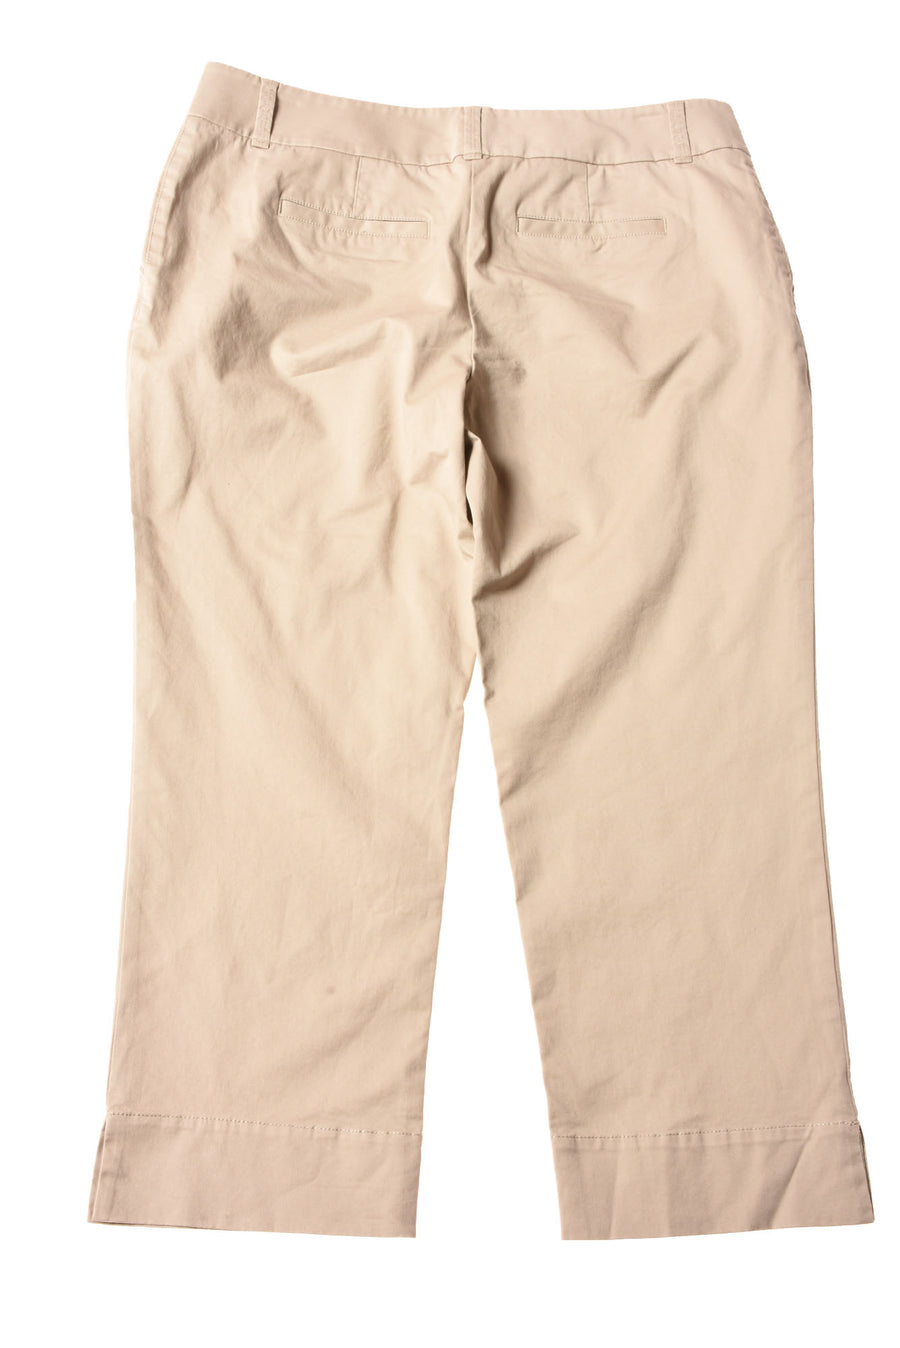 NEW  Tommy Bahama Women's Shorts 12 Tan